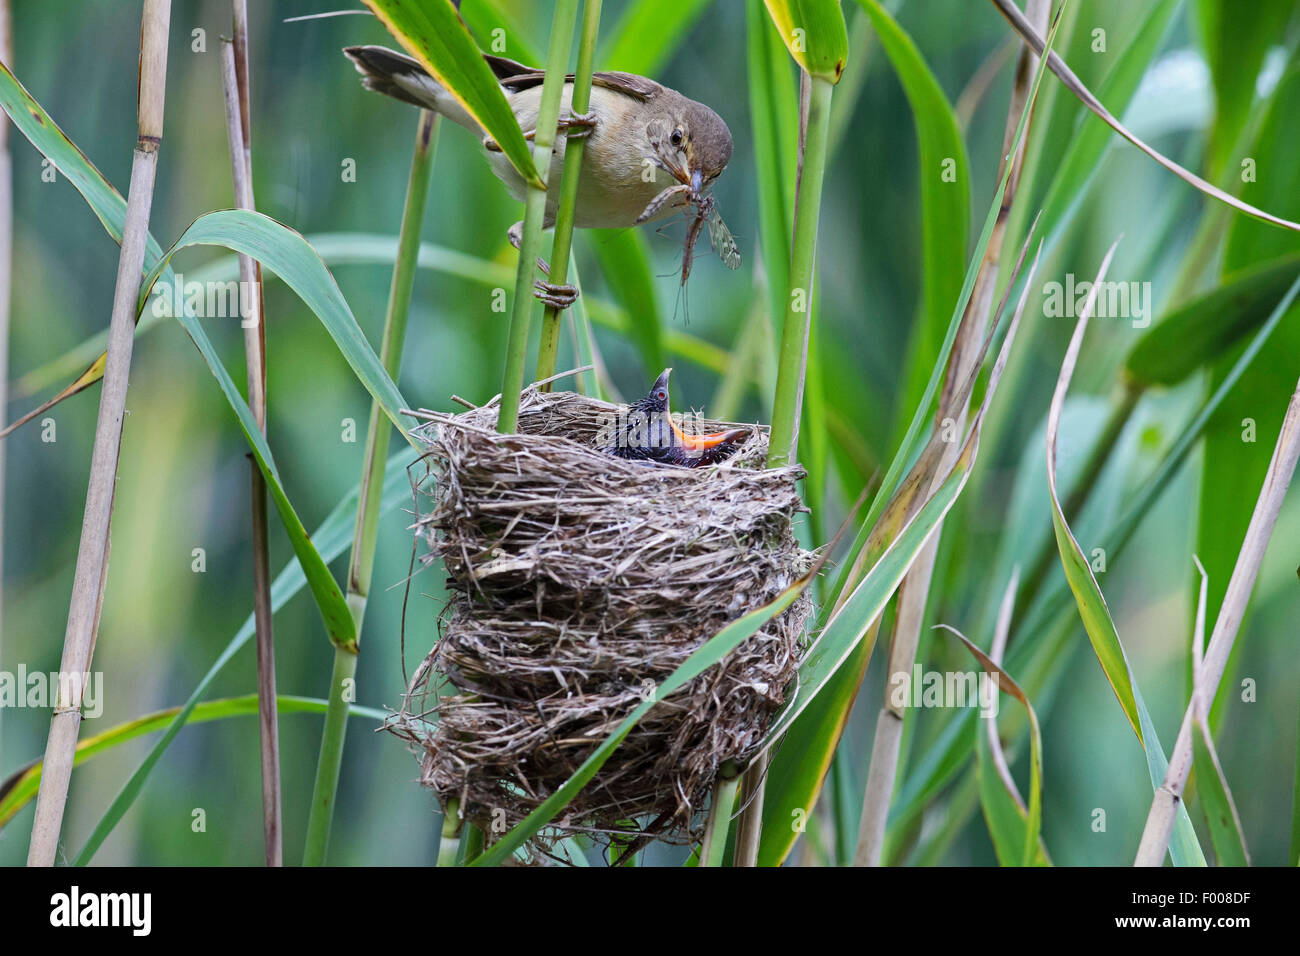 Eurasian cuckoo (Cuculus canorus), chick in the nest of a reed warbler, reed warbler feeding the cuckoo chick, Germany - Stock Image